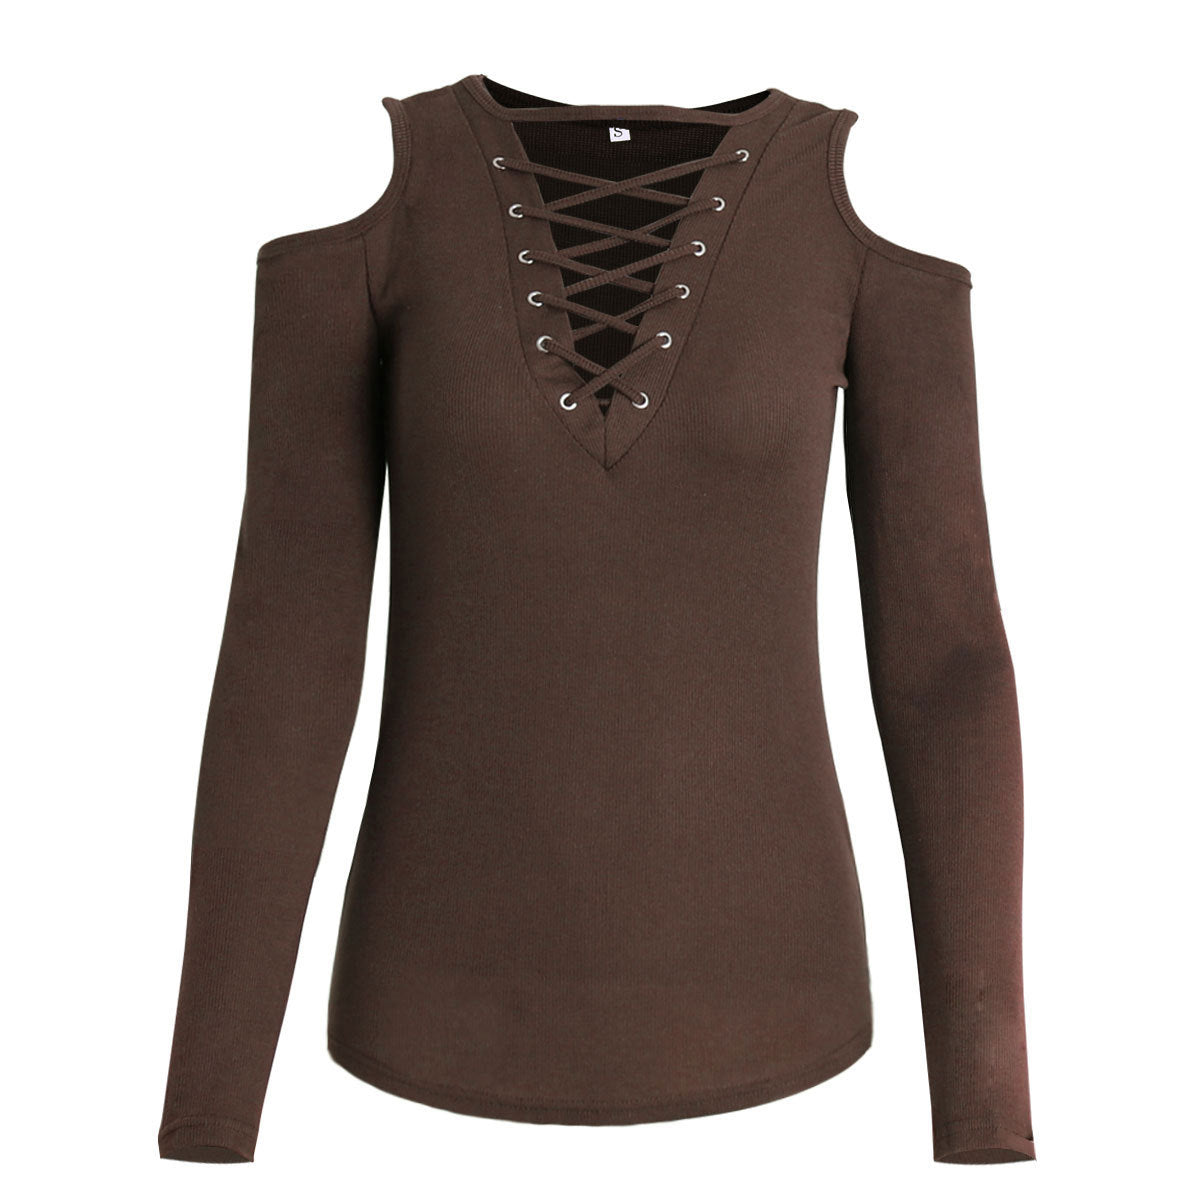 Strapless Cross Lacing long sleeved T-shirt